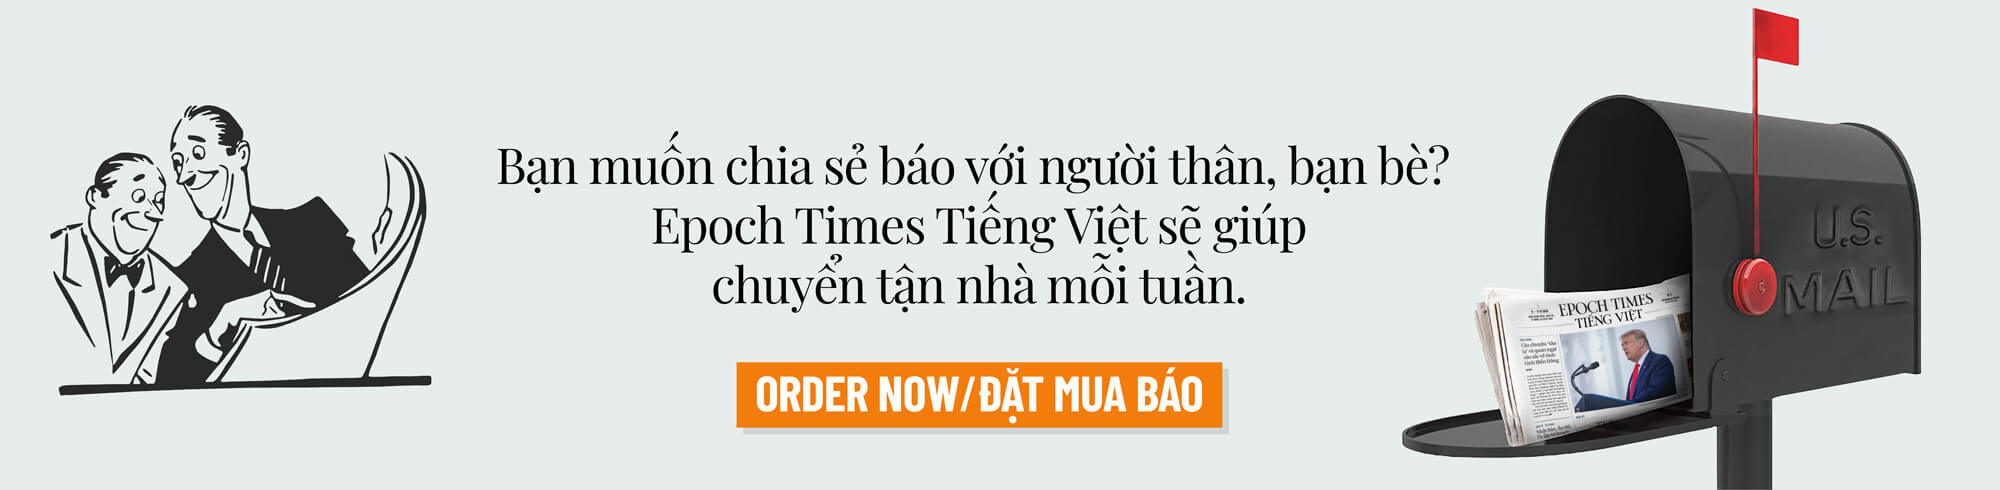 Subscription - Epoch Times Tiếng Việt